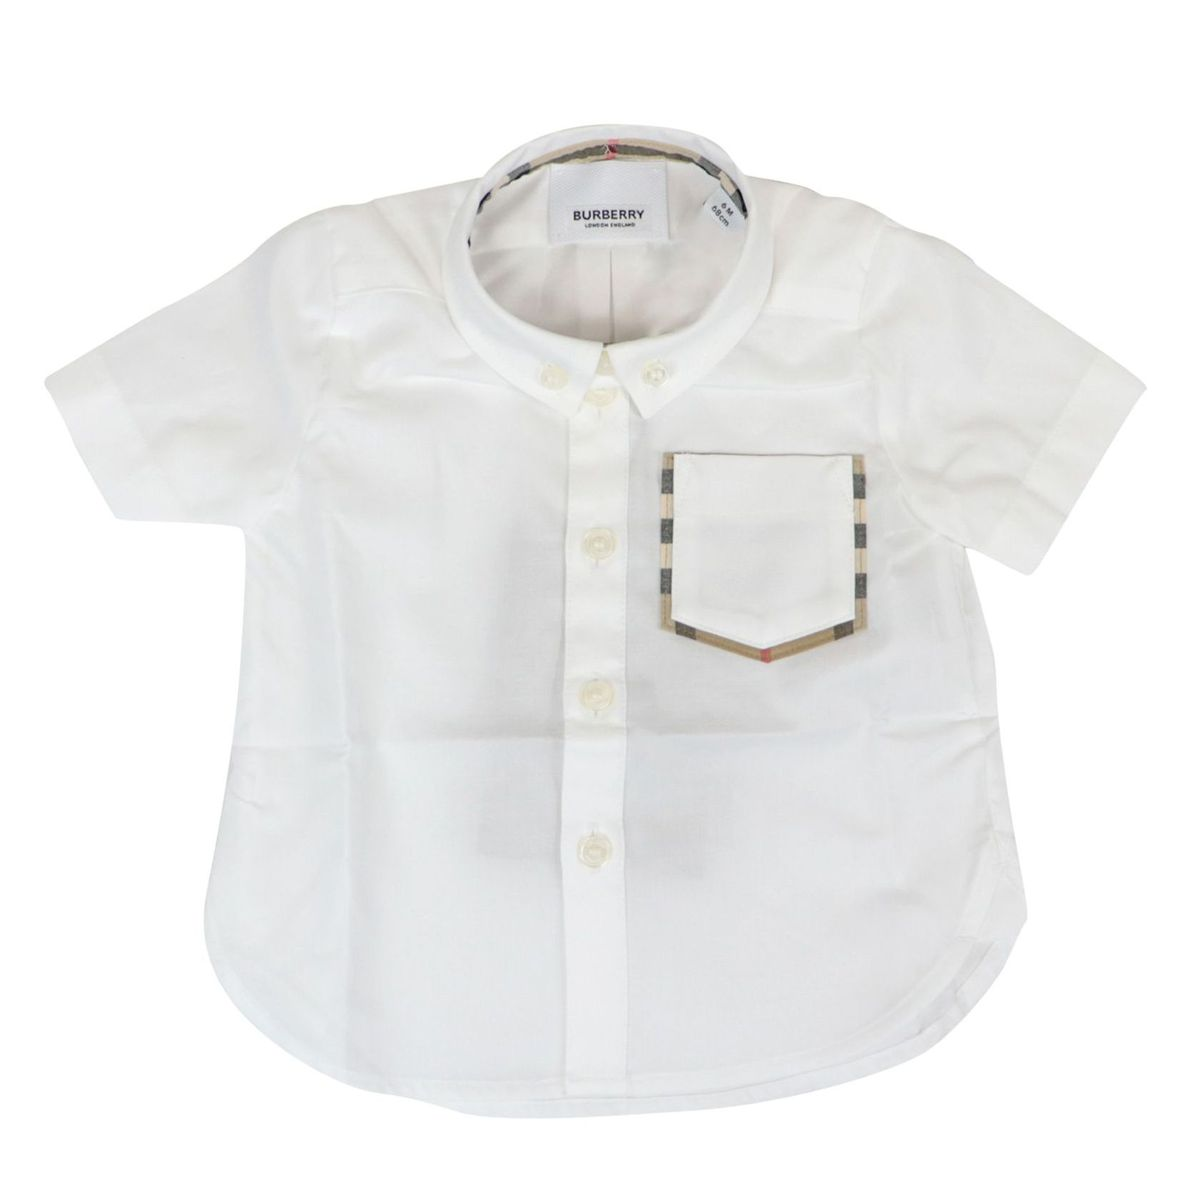 Harry short-sleeved cotton shirt with pocket and check pattern profile White Burberry